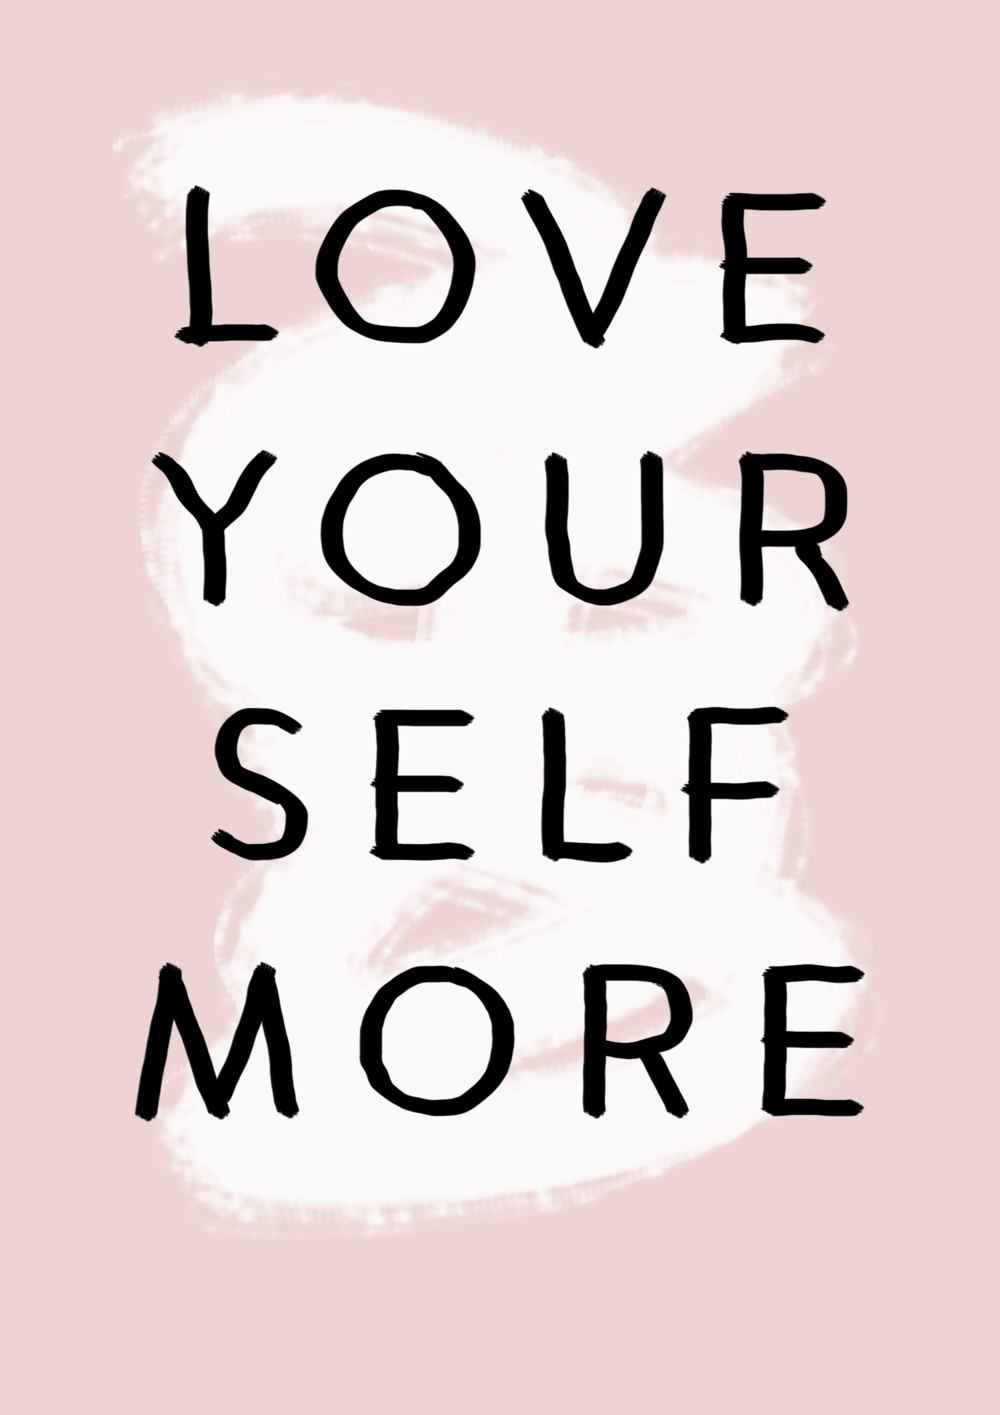 love yourself more // affirmations // phylleli design studio and blog